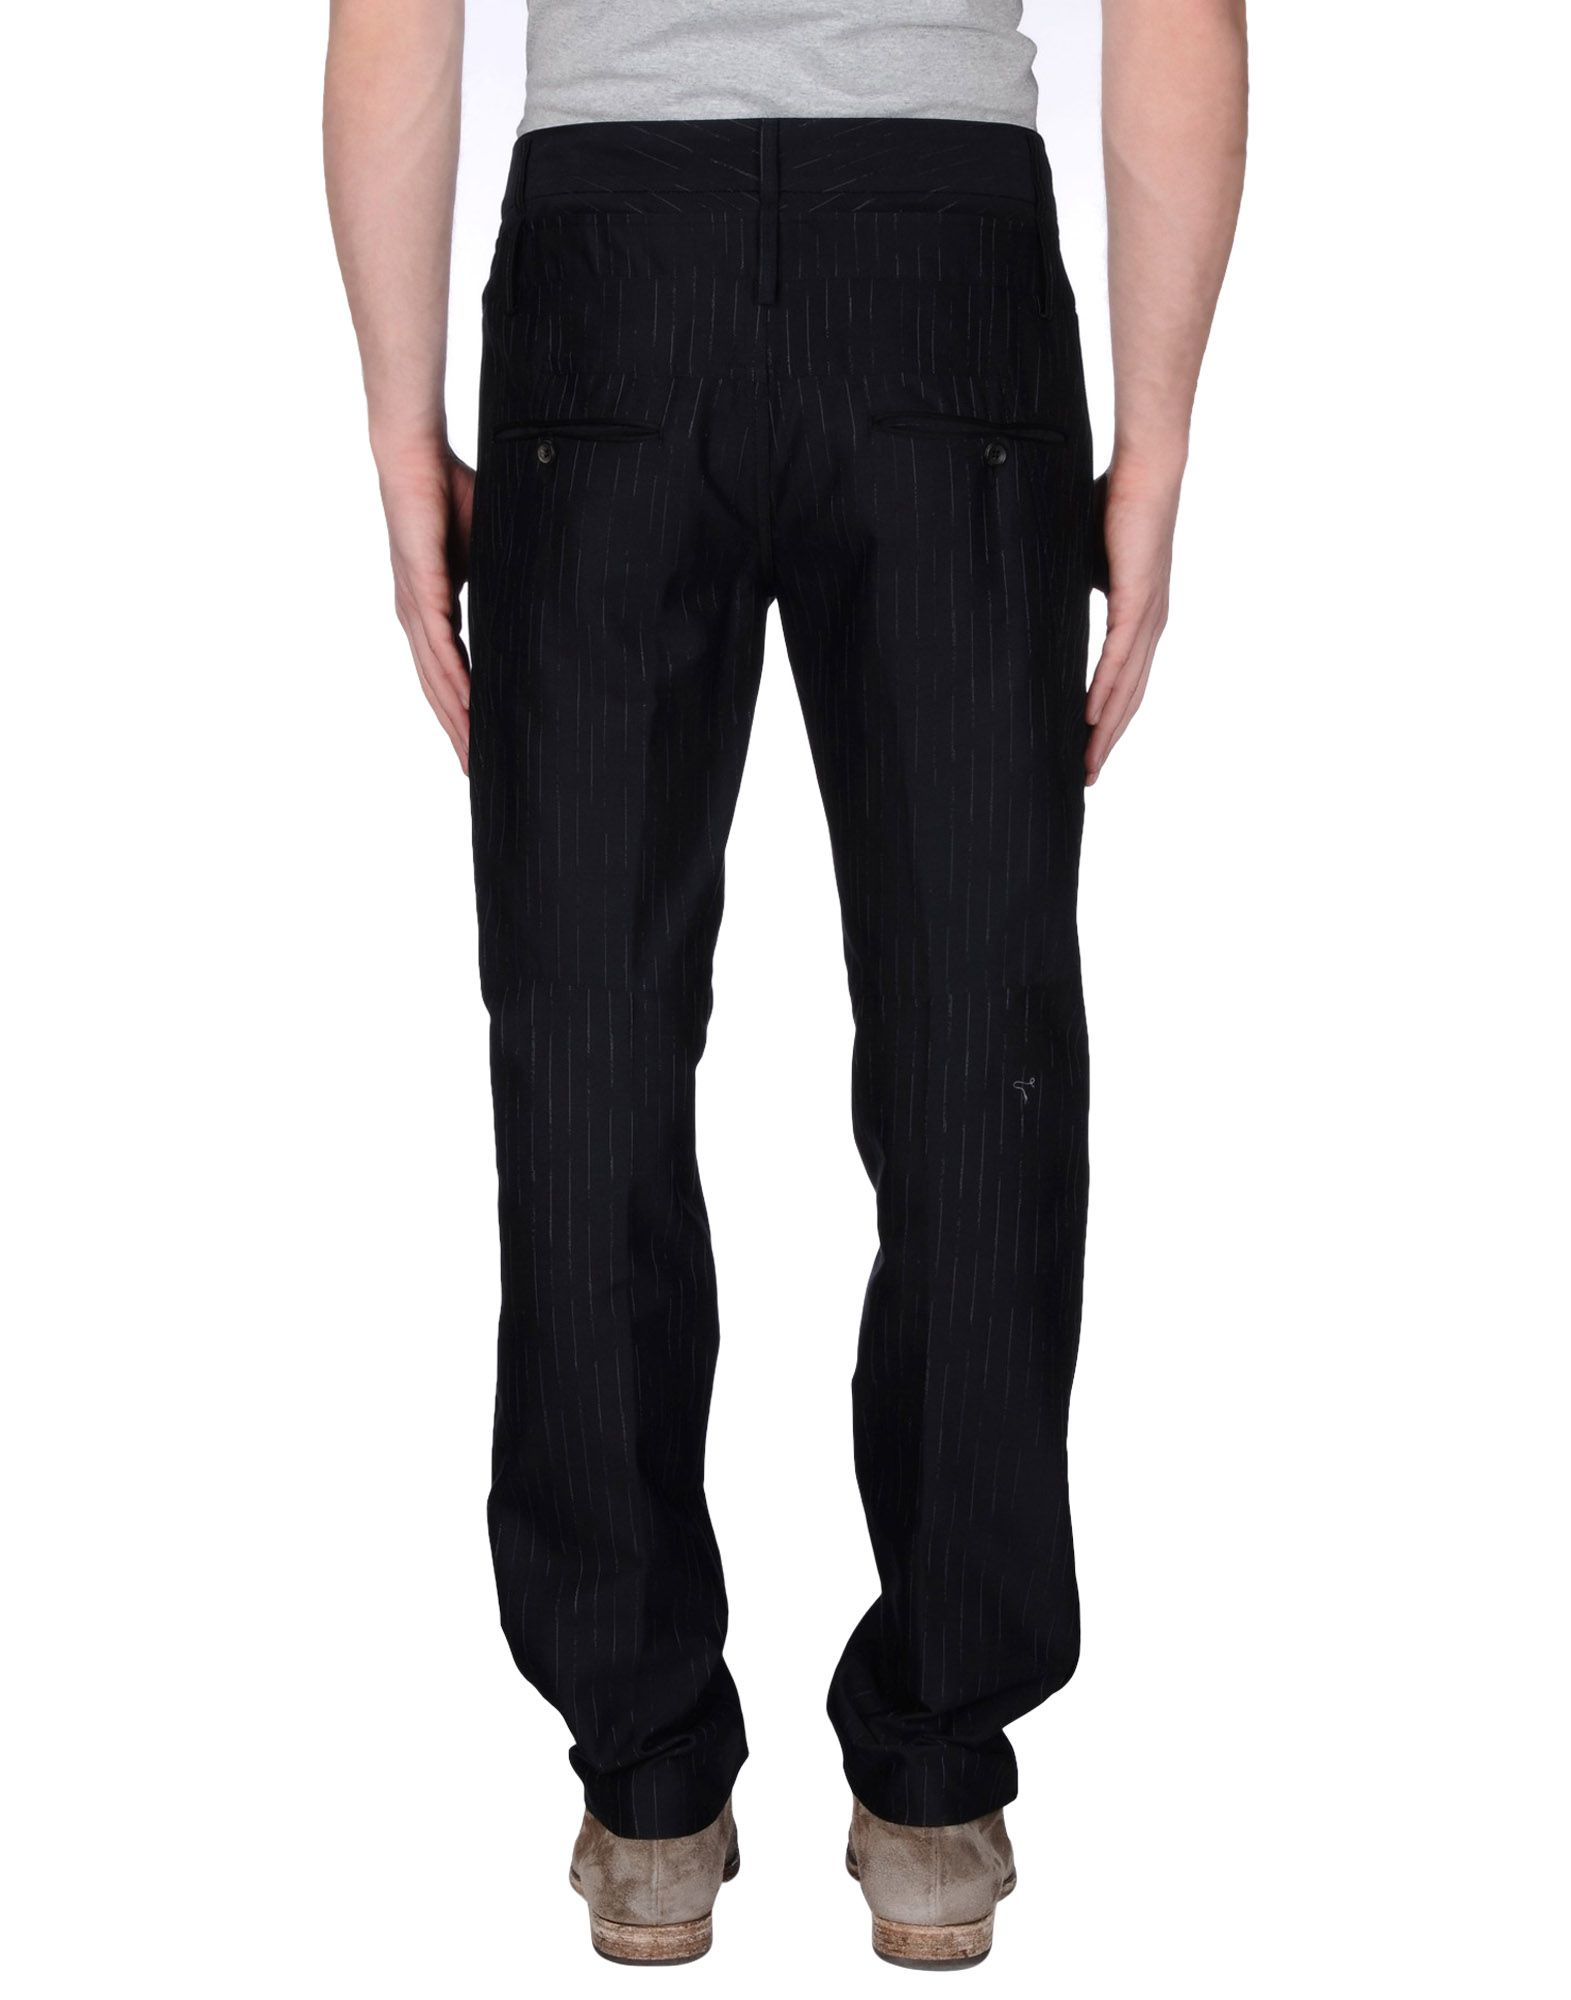 marith et fran ois girbaud casual trouser in black for men lyst. Black Bedroom Furniture Sets. Home Design Ideas